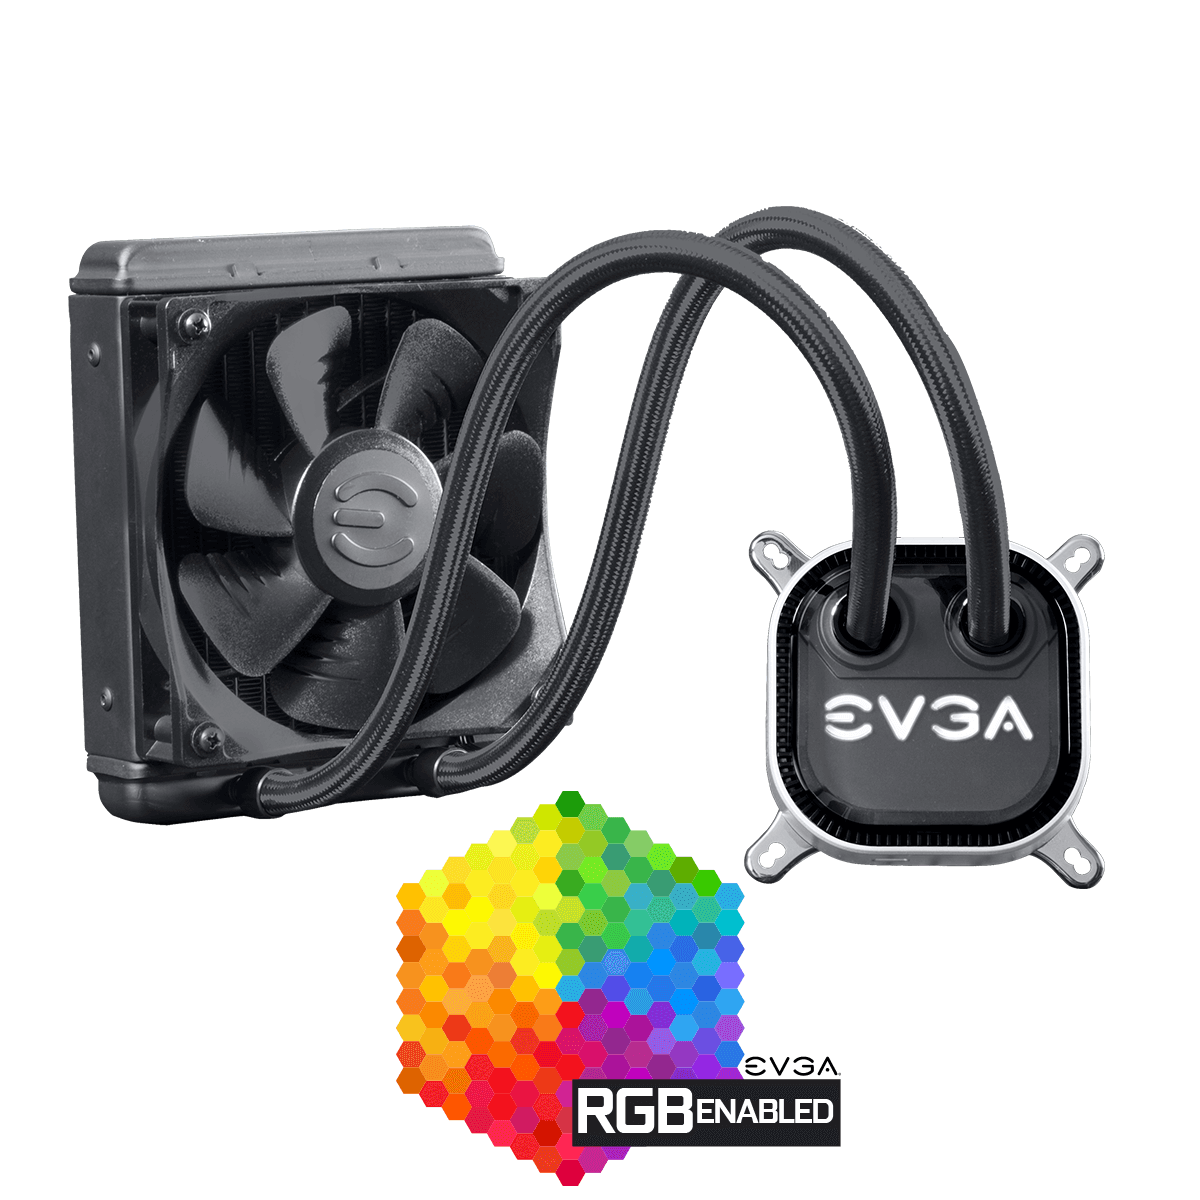 Cooler CPU EVGA CLC 120 Liquid RGB